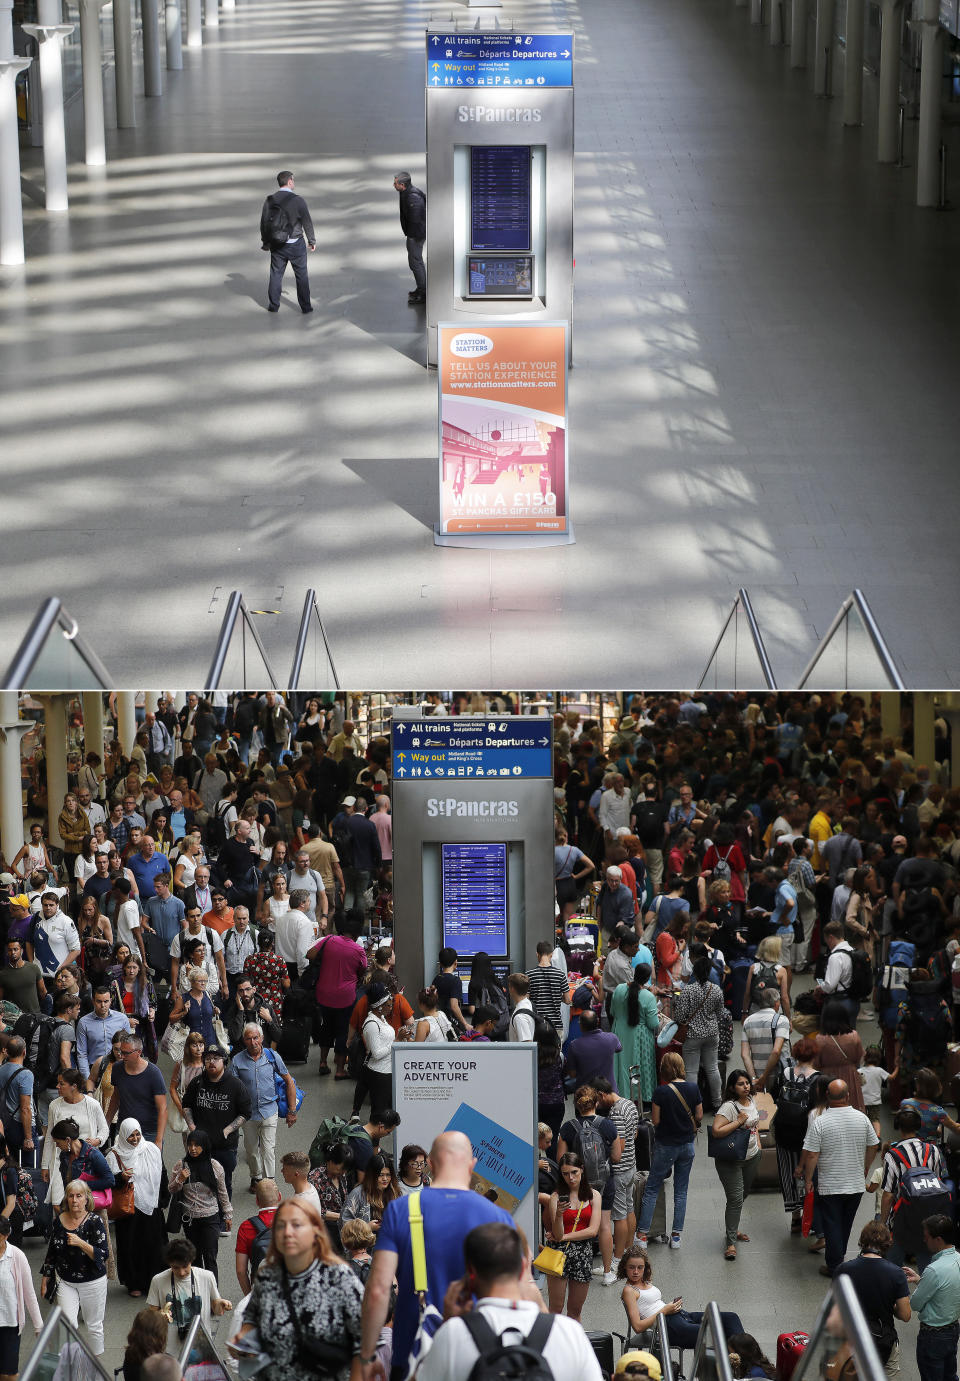 A combo of images shows people milling around at St Pancras International train station, in London on Friday, July 26, 2019 and the empty scene taken from the same angle on Thursday, April 2, 2020. When Associated Press photographer Frank Augstein moved to London in 2015, what struck him most was the crowds. Augstein revisited in recent days many of sites he has photographed, after Britain — like other countries around the world — went into effective lockdown to stem the spread of the new coronavirus. (AP Photo/Frank Augstein)